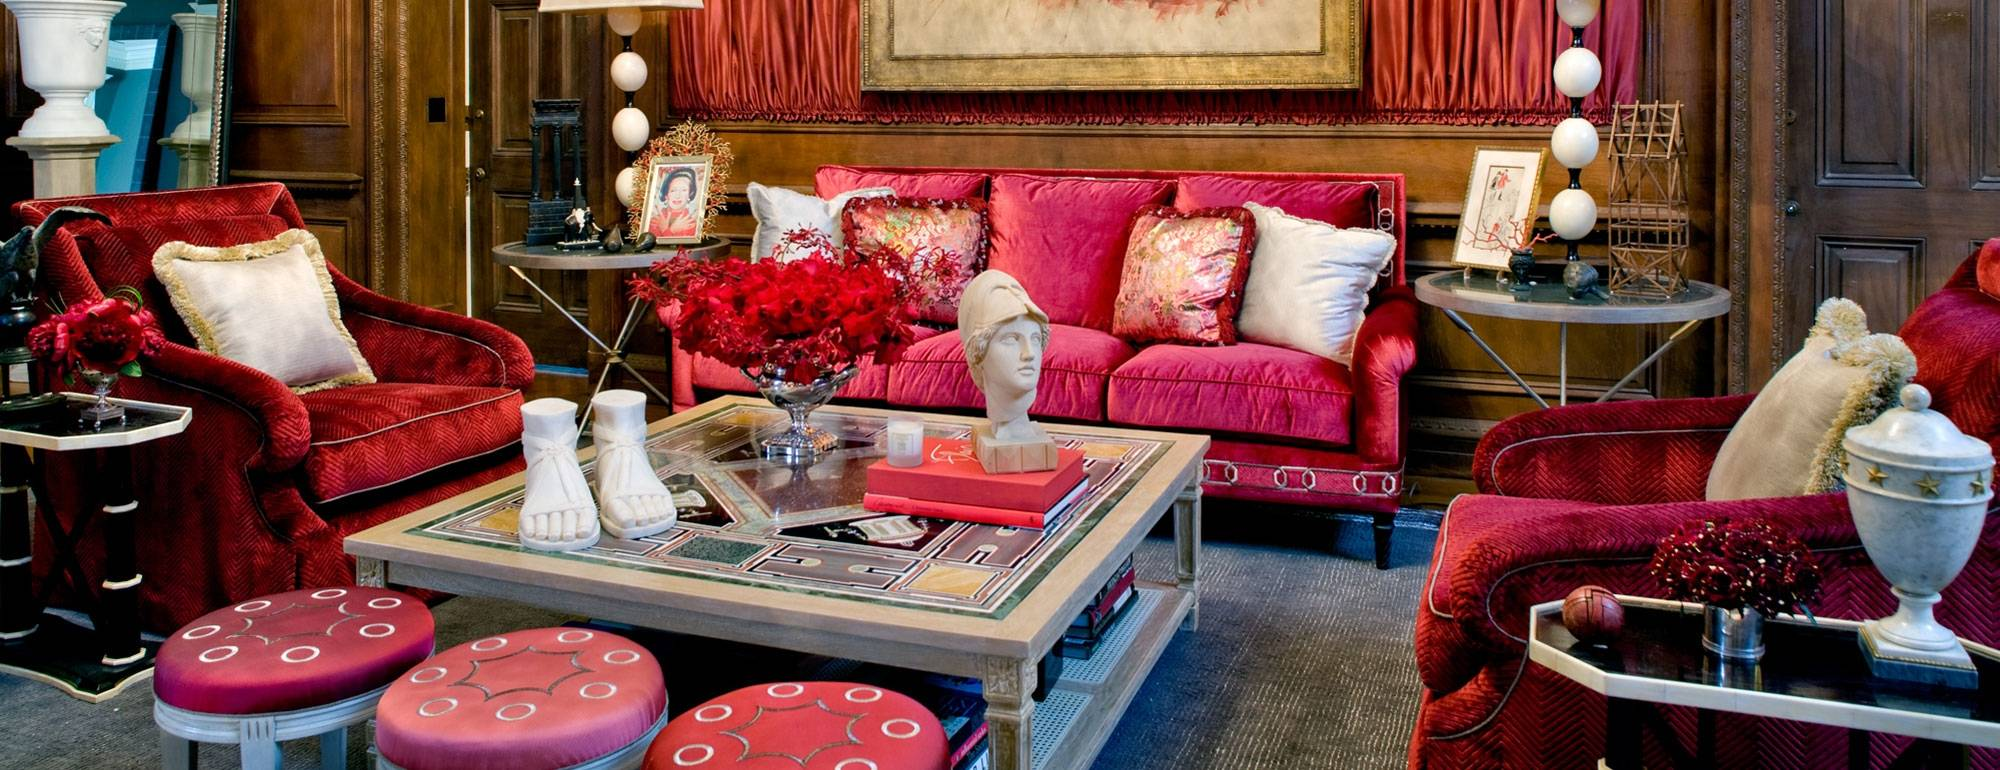 top interior designer famous interior designs timothy corrigan